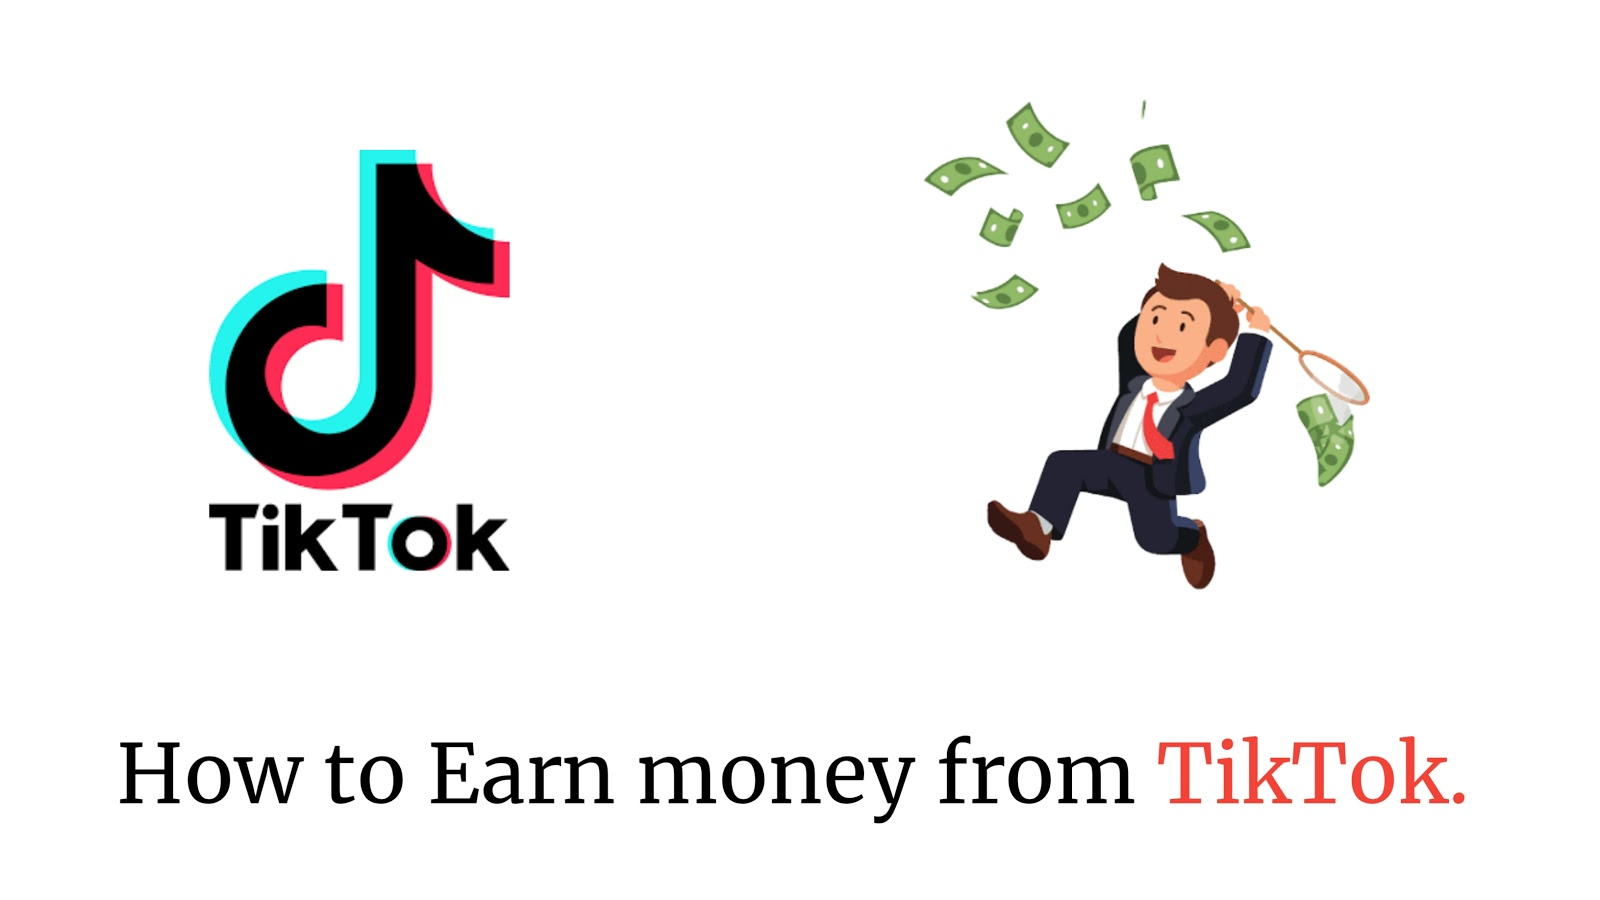 How can I earn money from TikTok?, How many views do you need to get paid on TikTok?,Does TikTok pay money for videos?,Do TikTokers get paid?,can you earn money from tik tok,how tik tok makes money,how many likes on tiktok to get paid